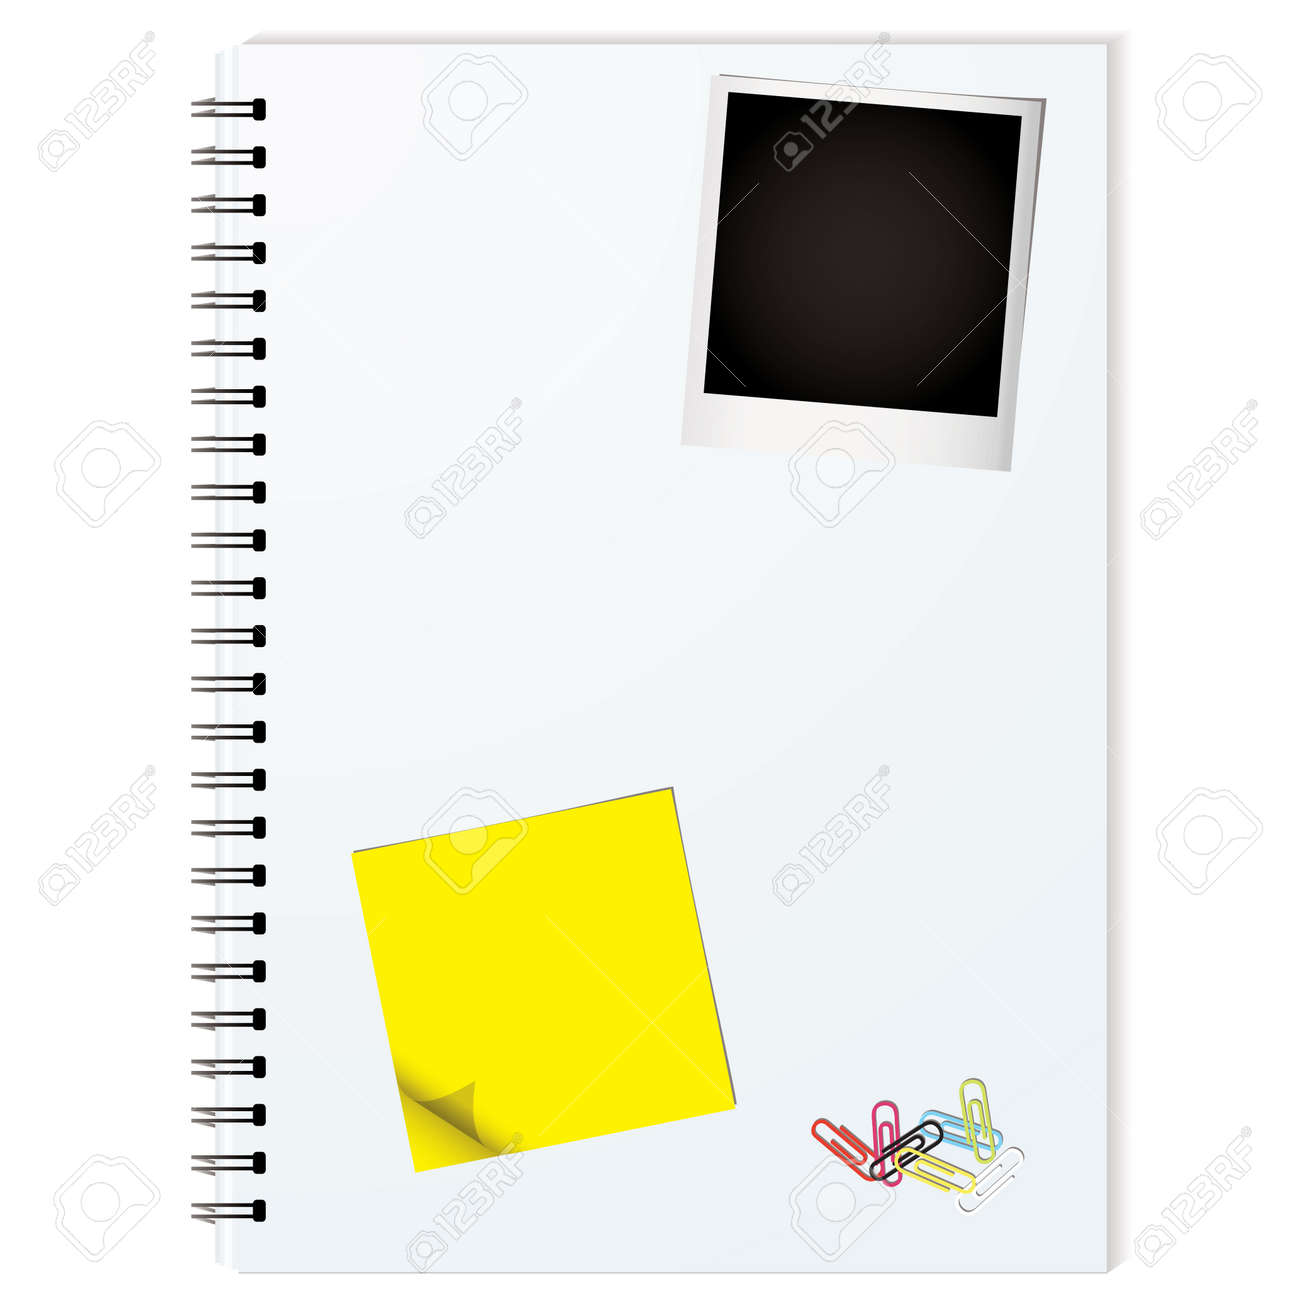 Business writing pad with instant photograph and paper clips Stock Vector - 6052168